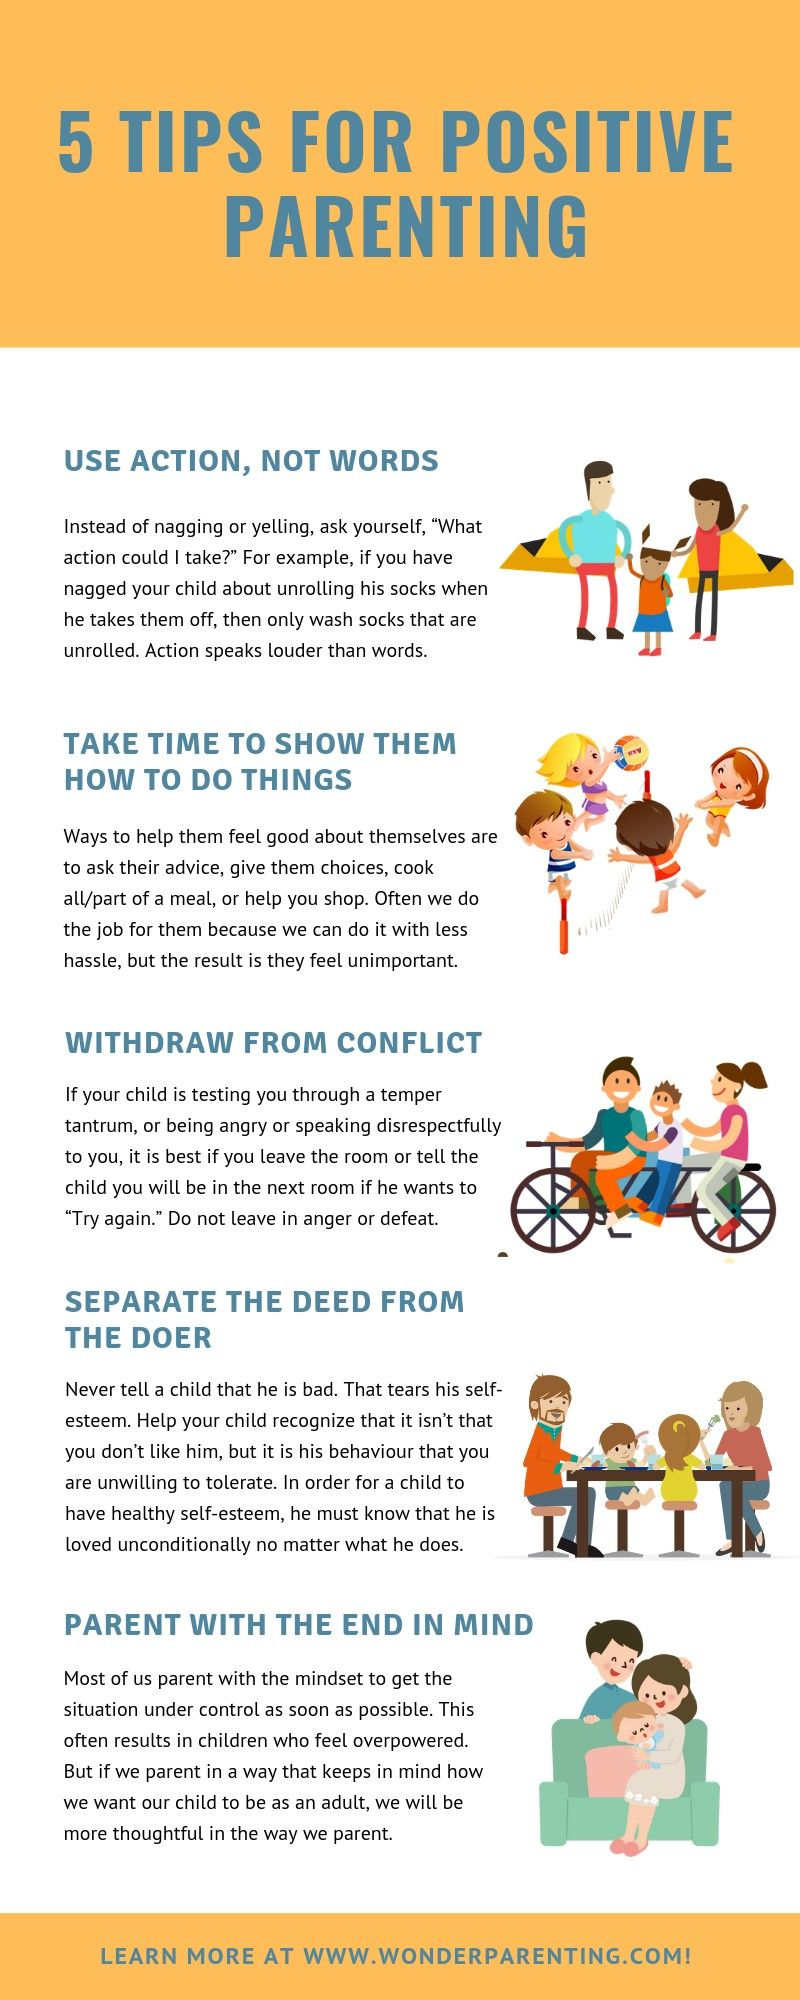 Here are the 5 essential tips for positive parenting. ️